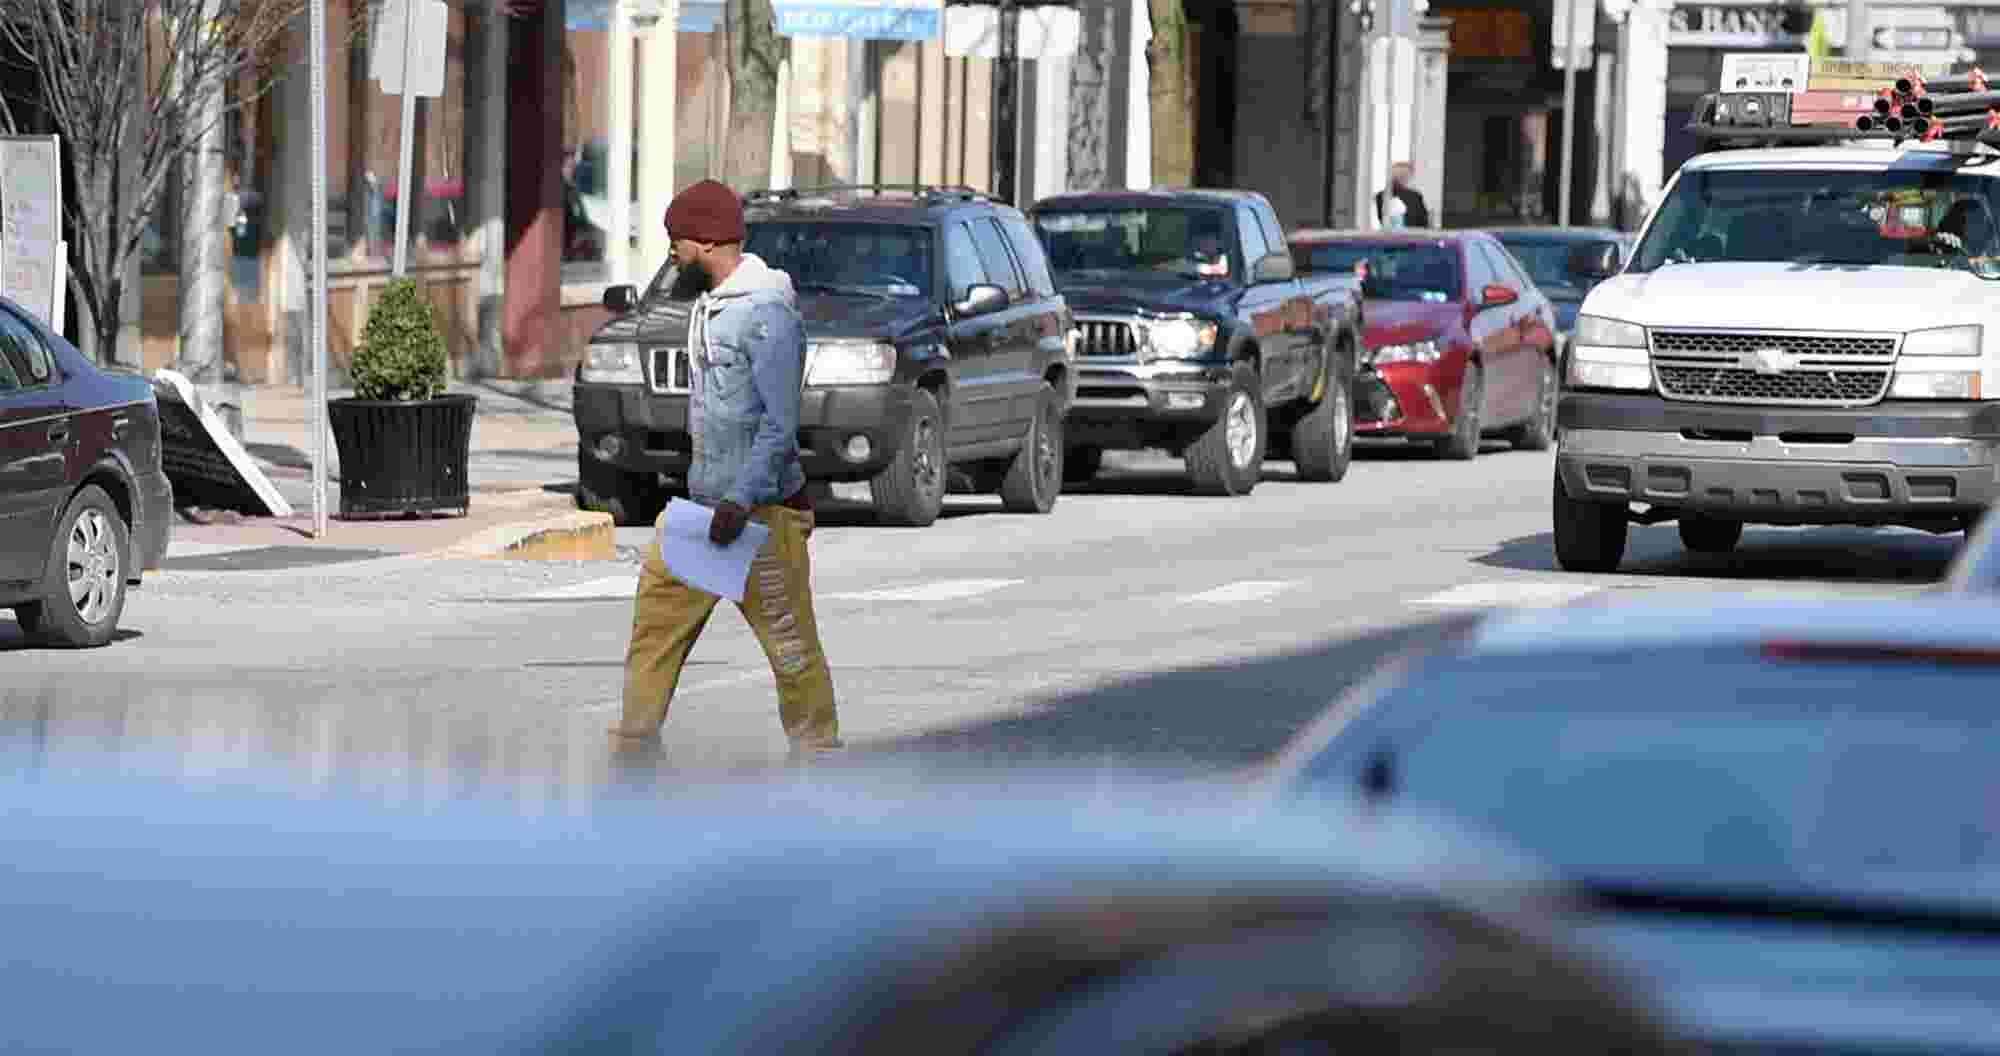 Here are the rules for jaywalking and crosswalk safety